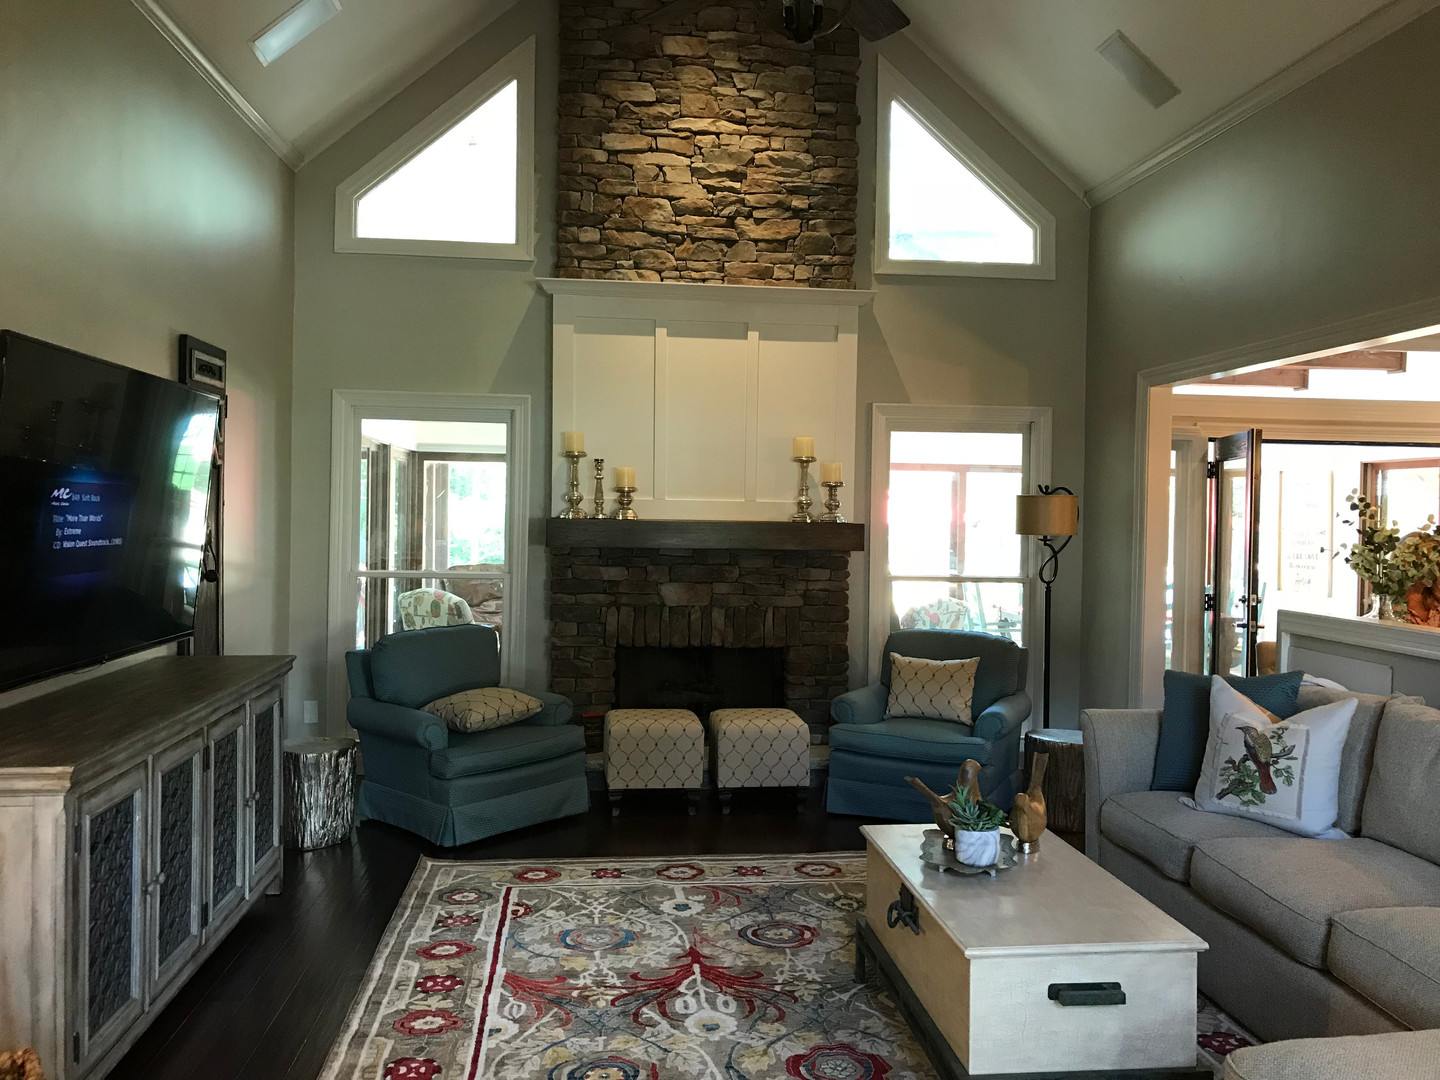 Family Room Renovation - After